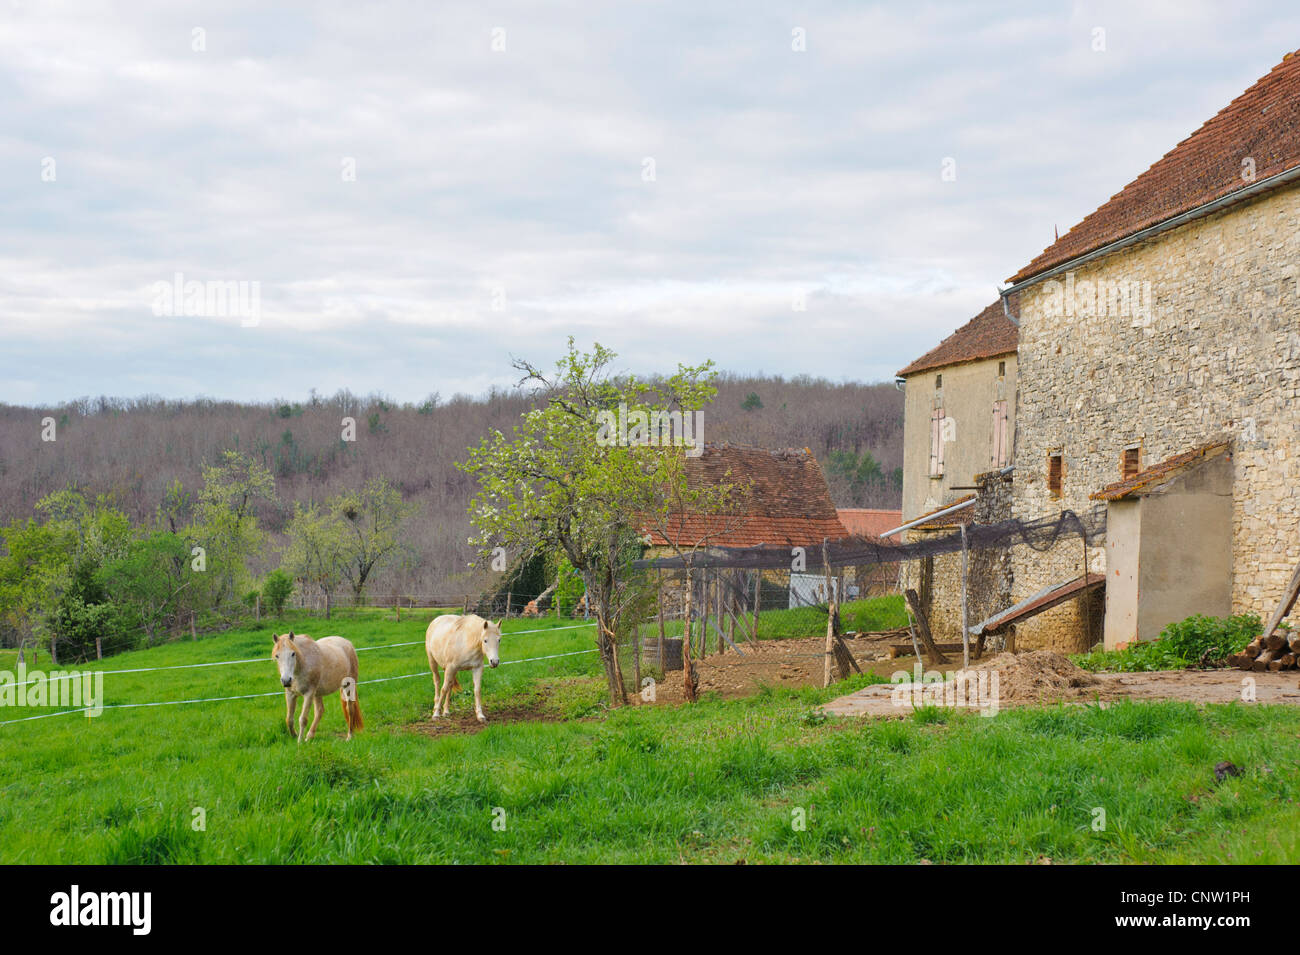 White Horse On A French Farm In The Vallee Du Lot In Southern France Stock Photo Alamy